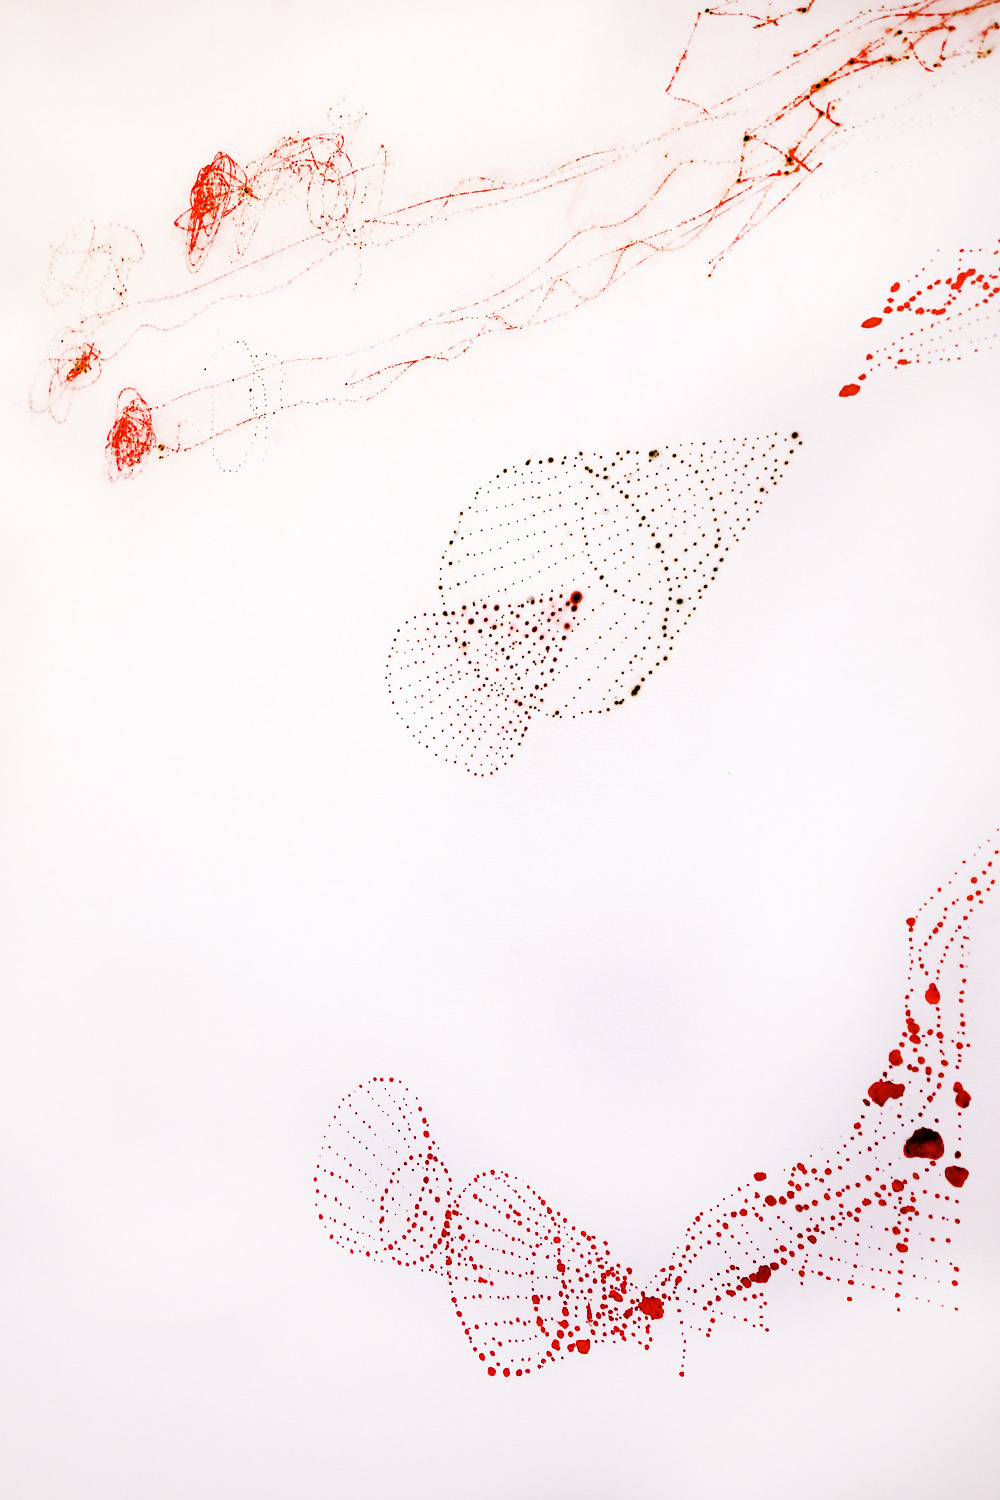 Vermilion Large Drawing, 2014 - detail.